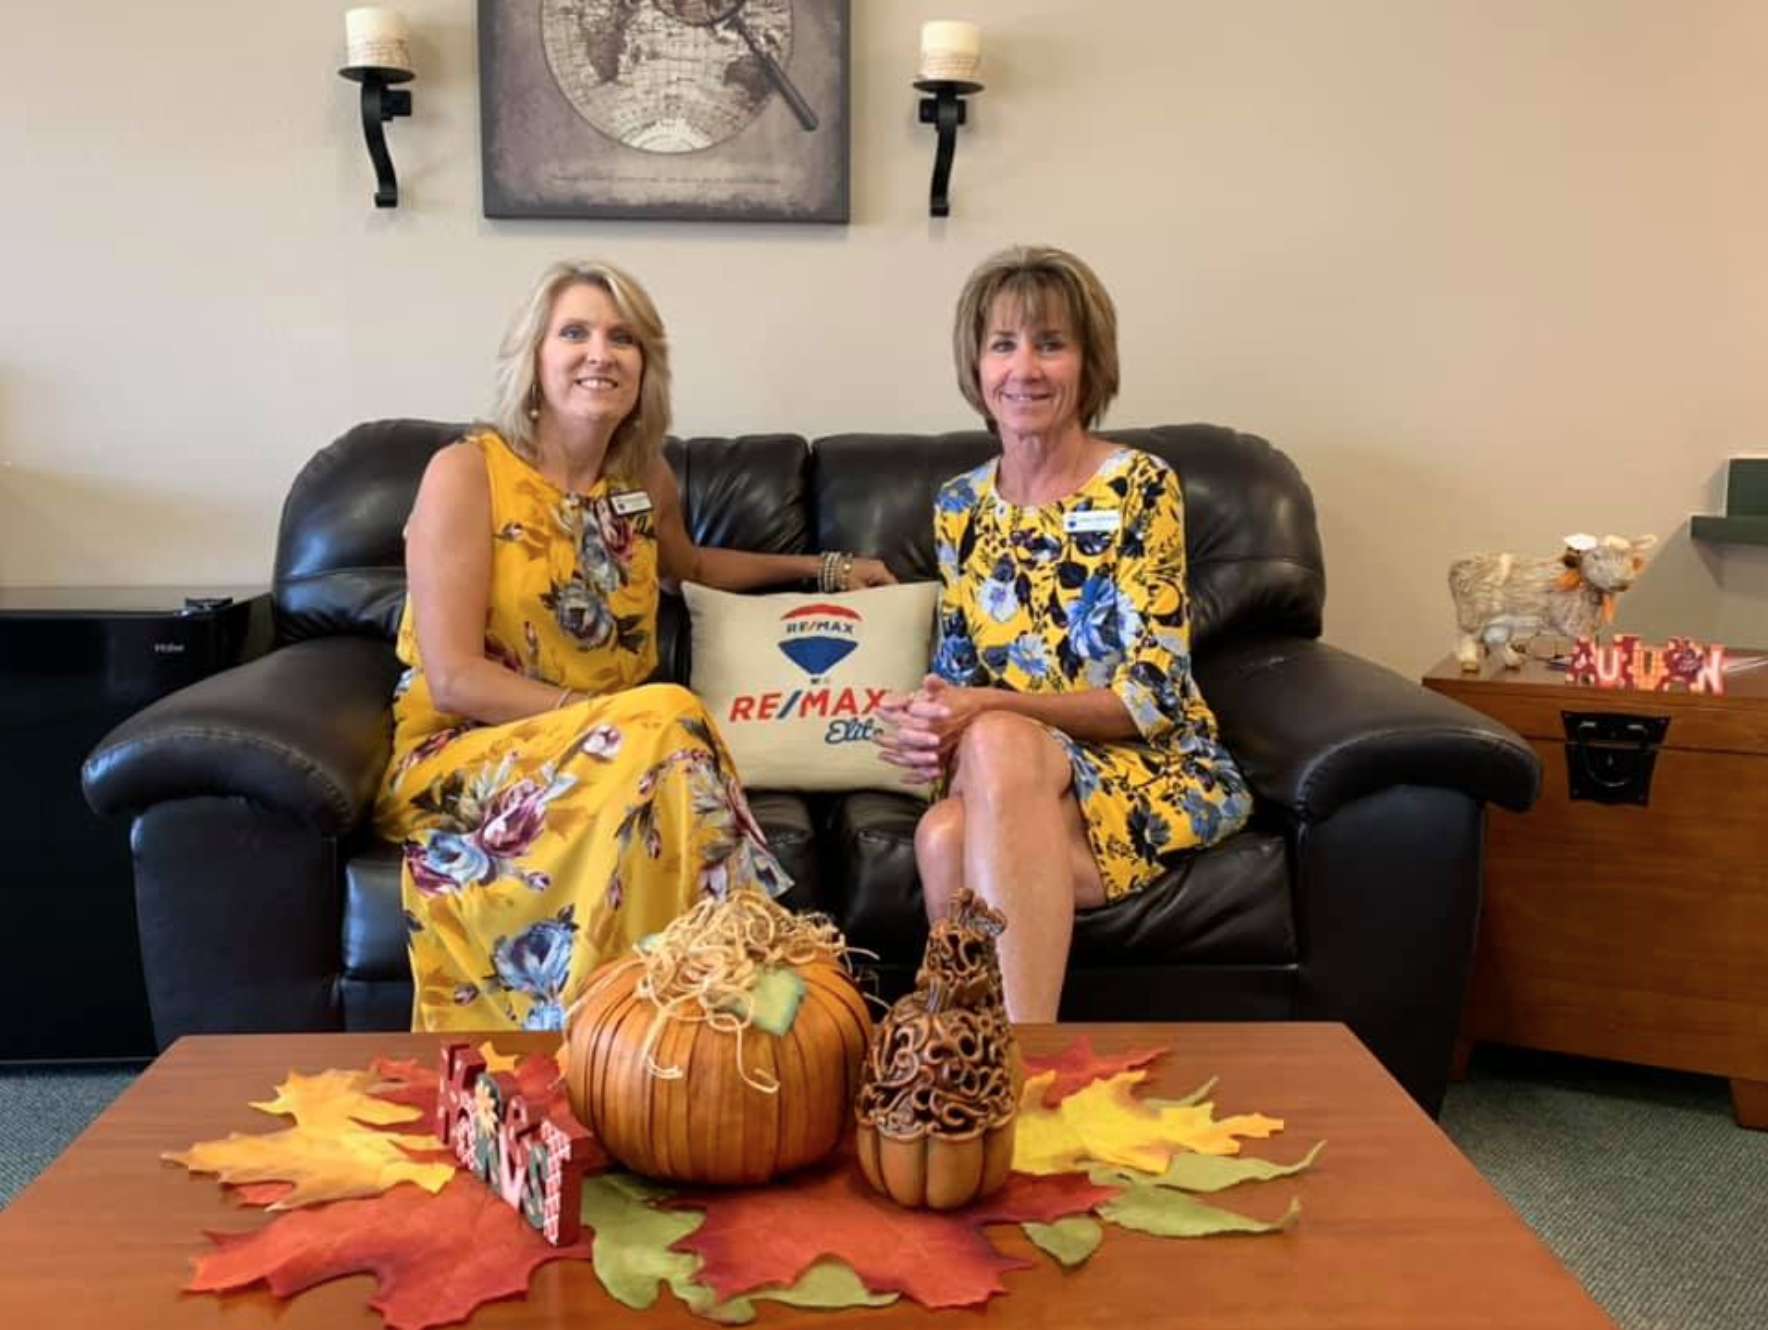 Sandy Sandweg and Hope Williams are brokers at RE/MAX Elite and ready to serve you!